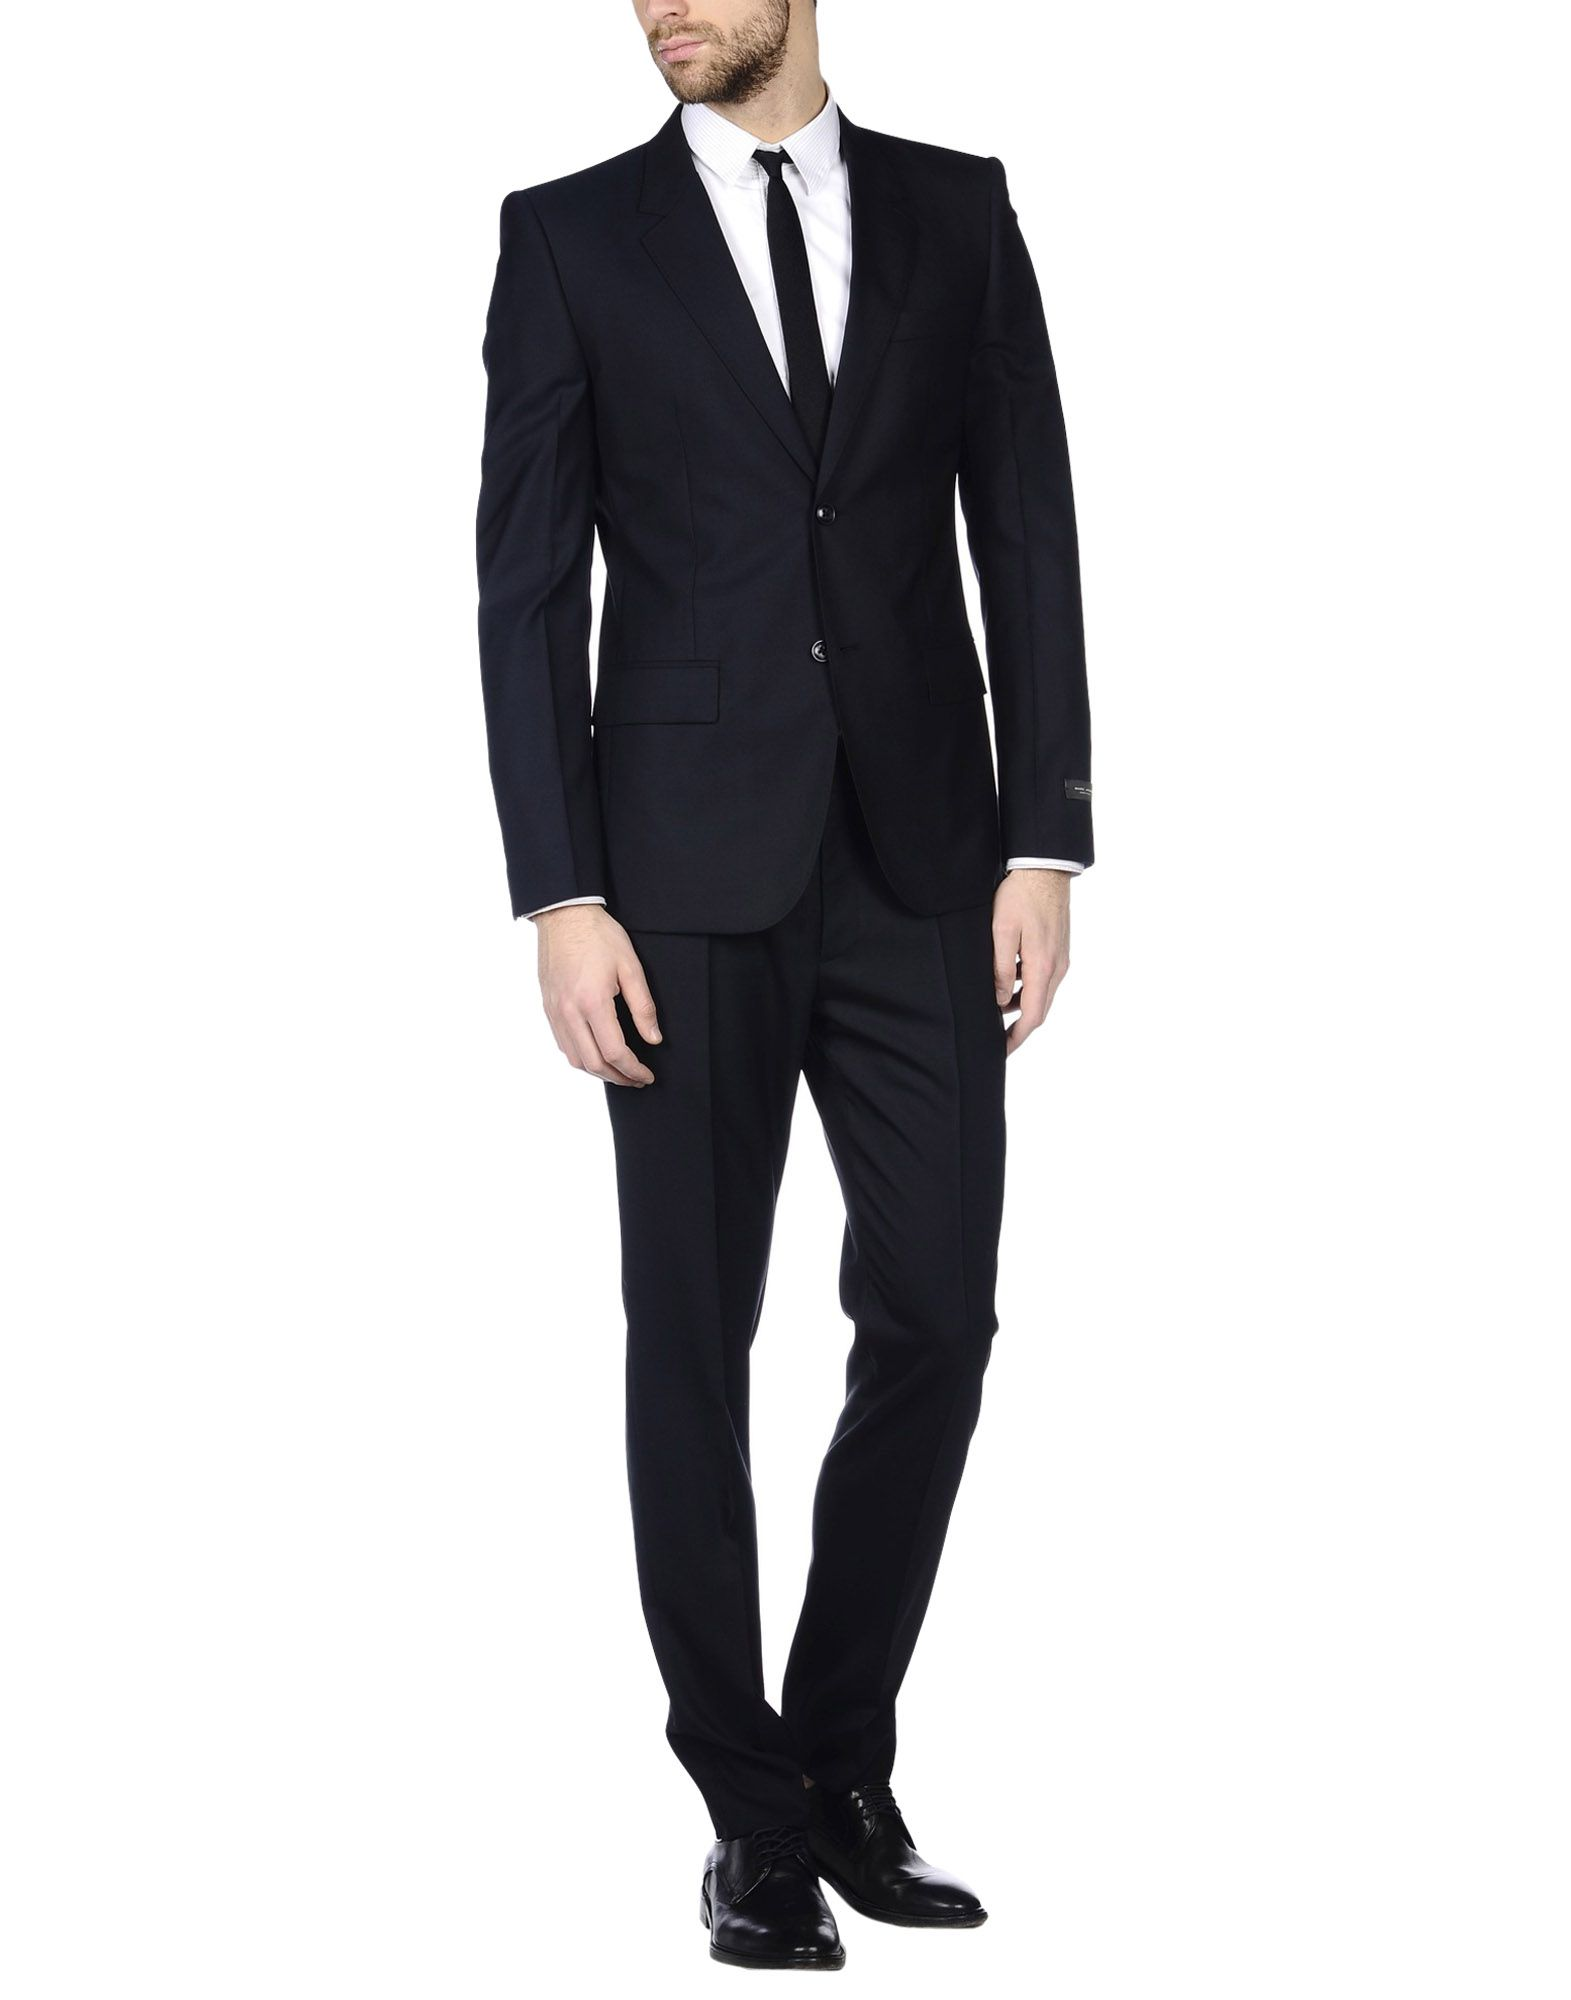 marc jacobs male marc jacobs suits